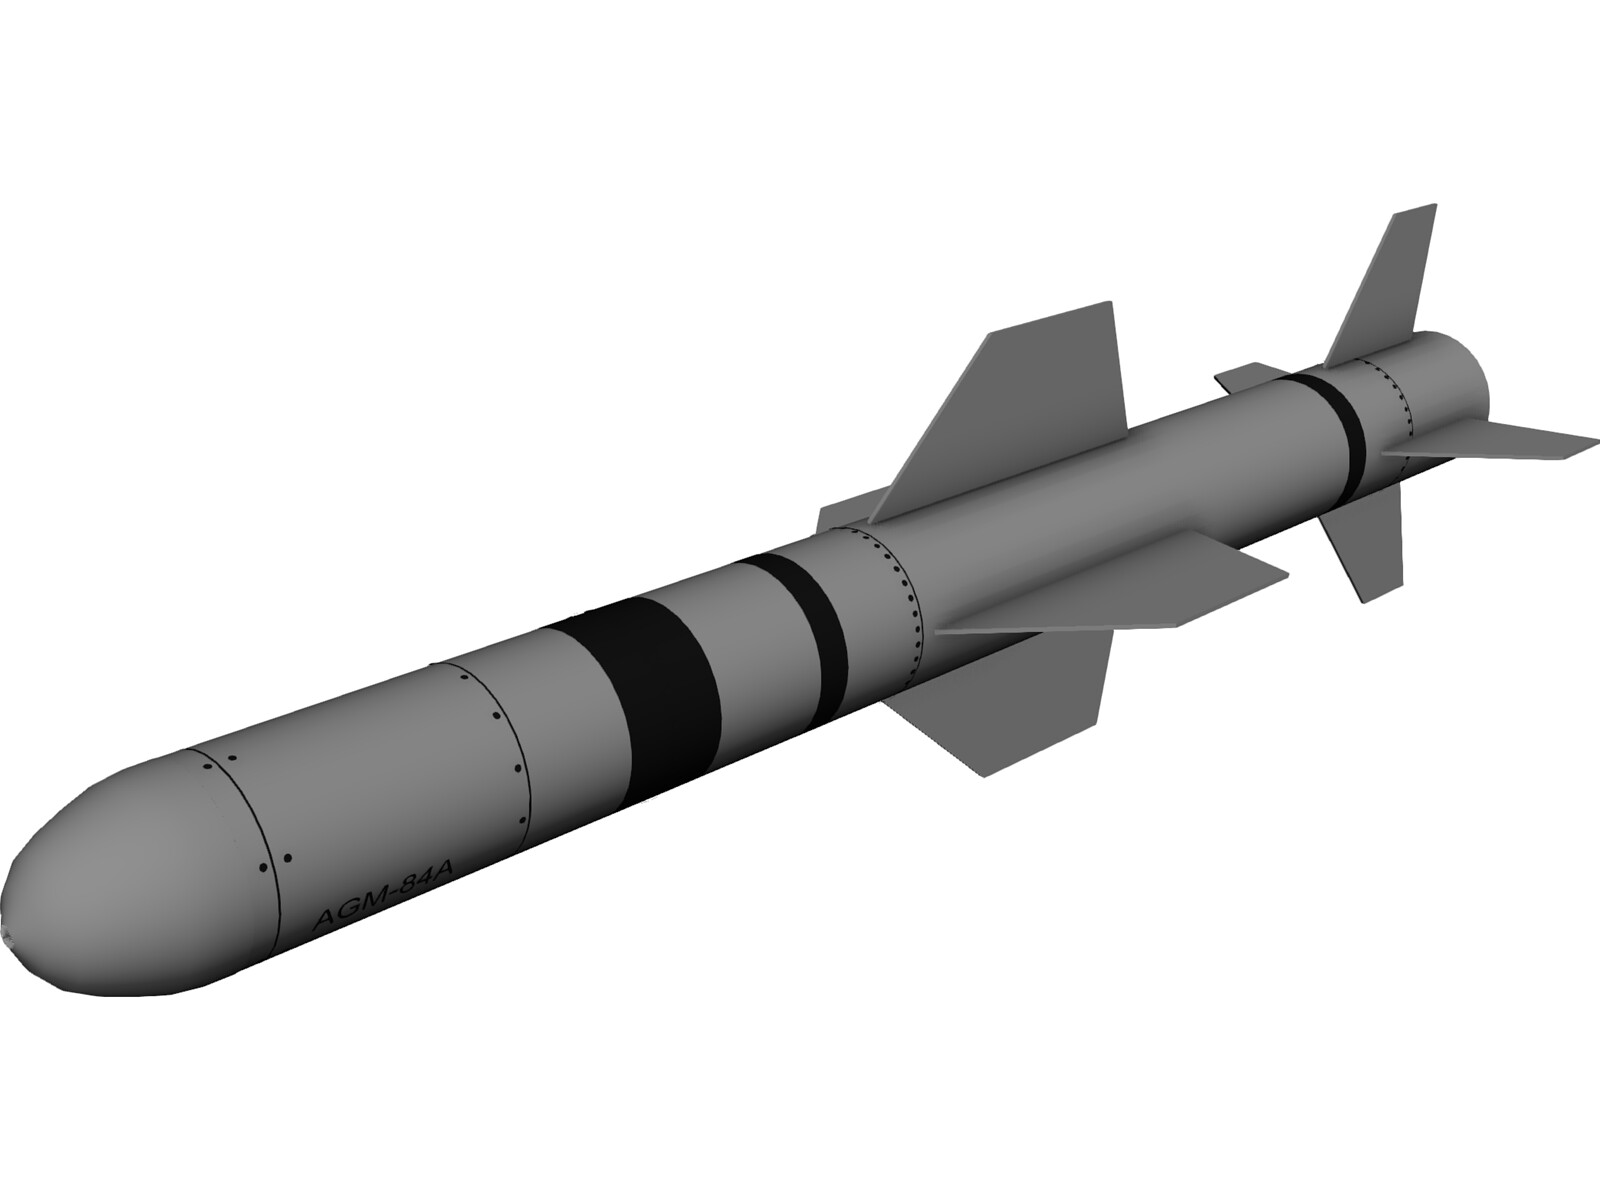 AGM-84A Harpoon